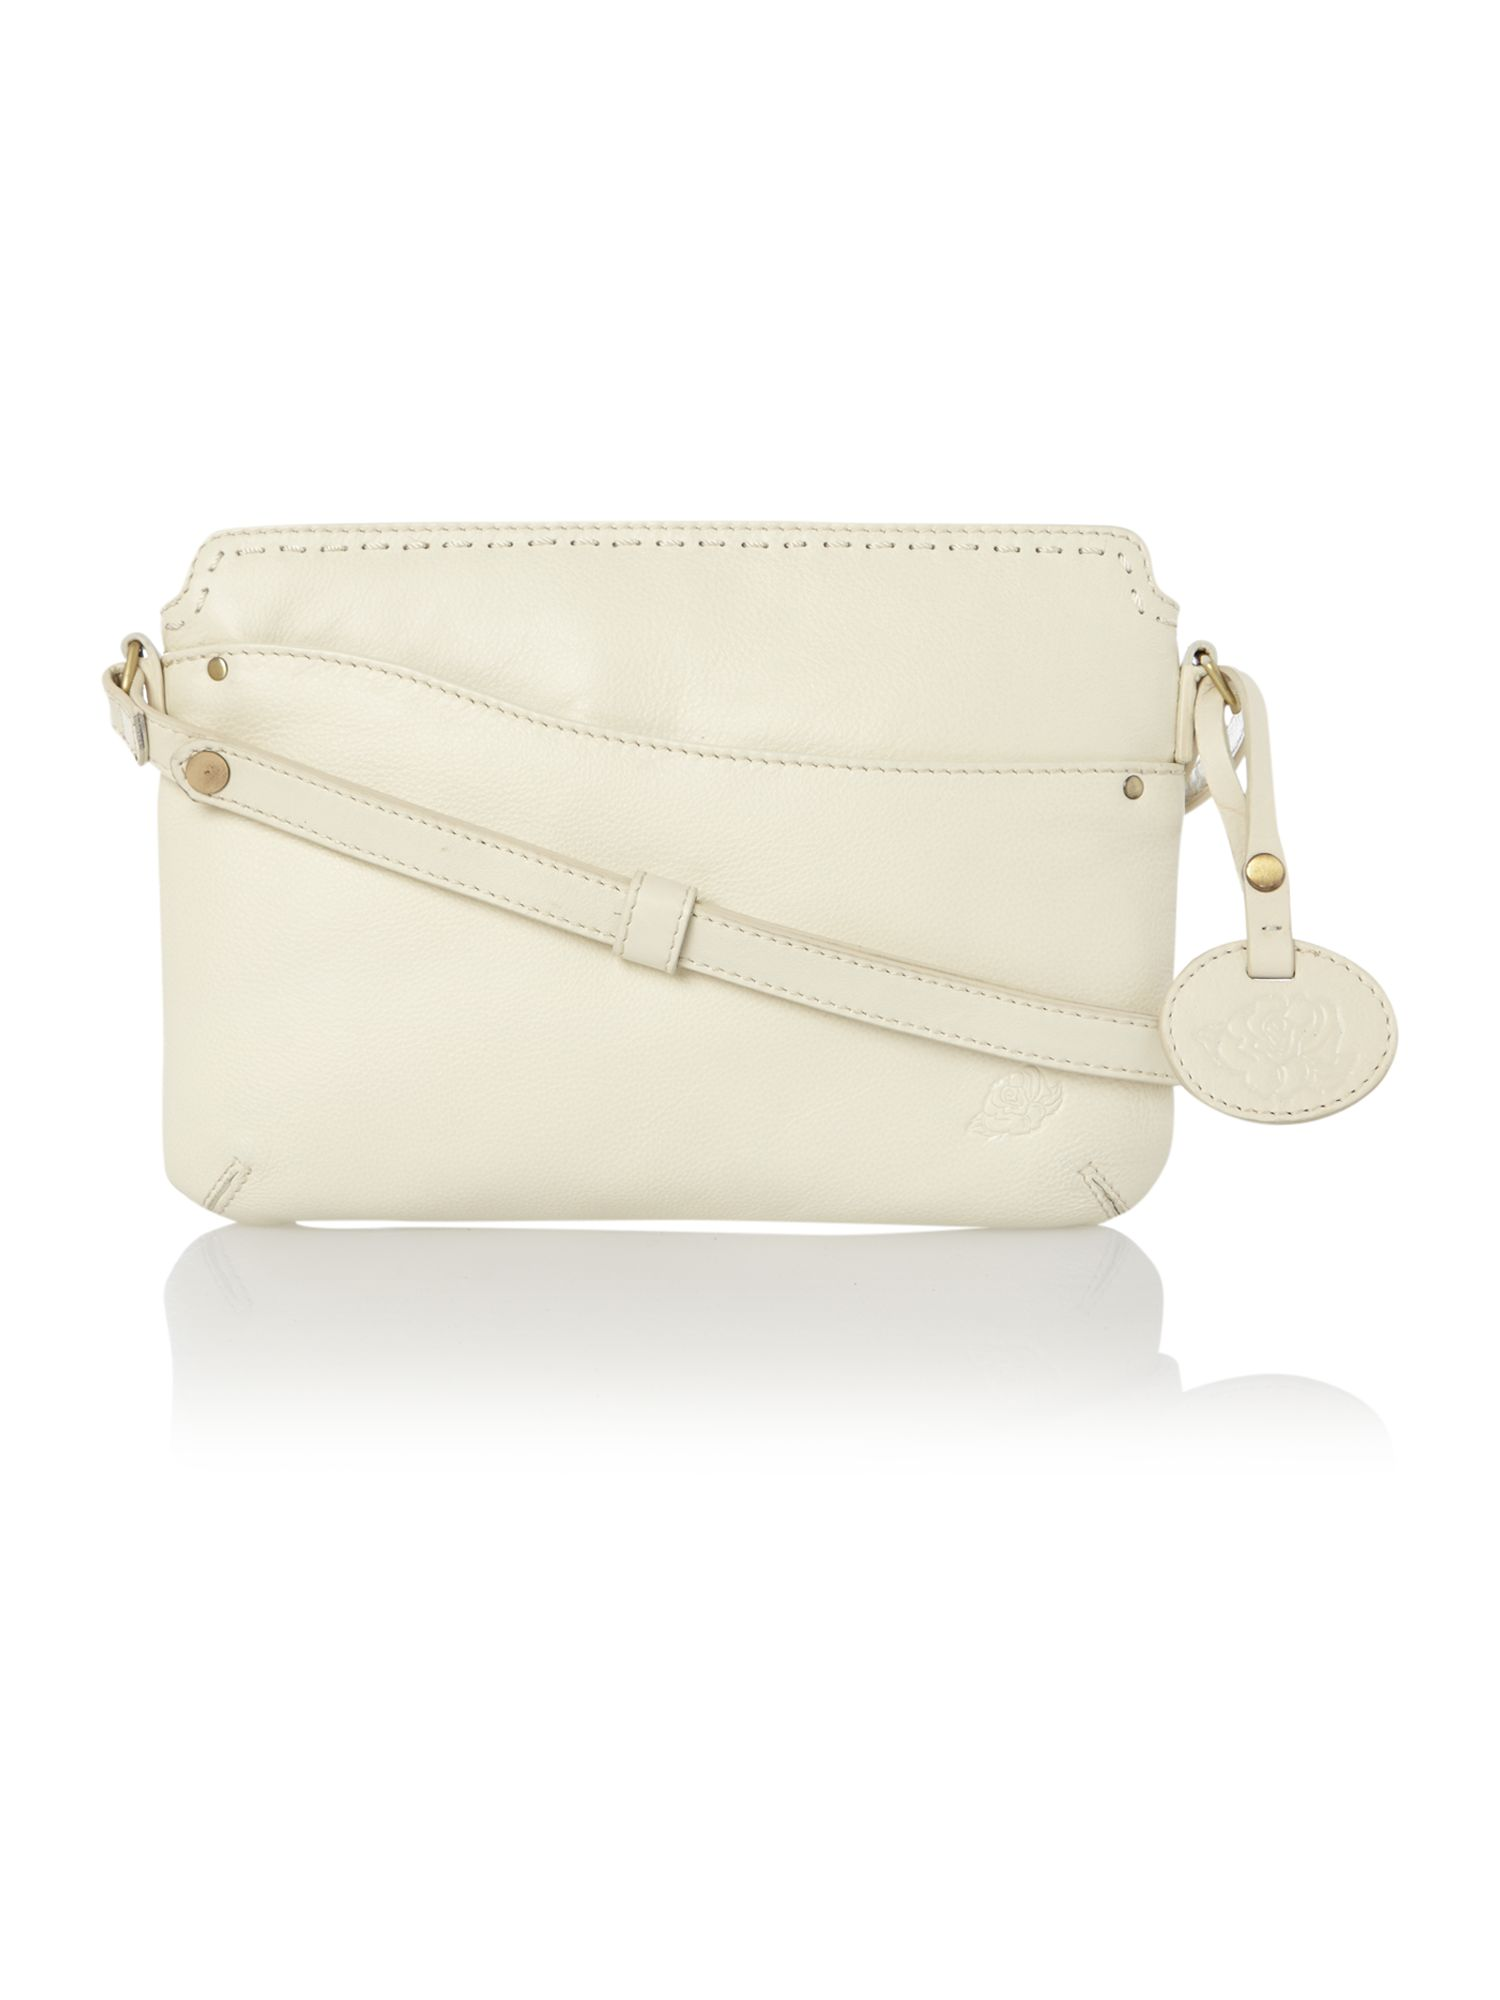 Yorkshire mini cross body bag